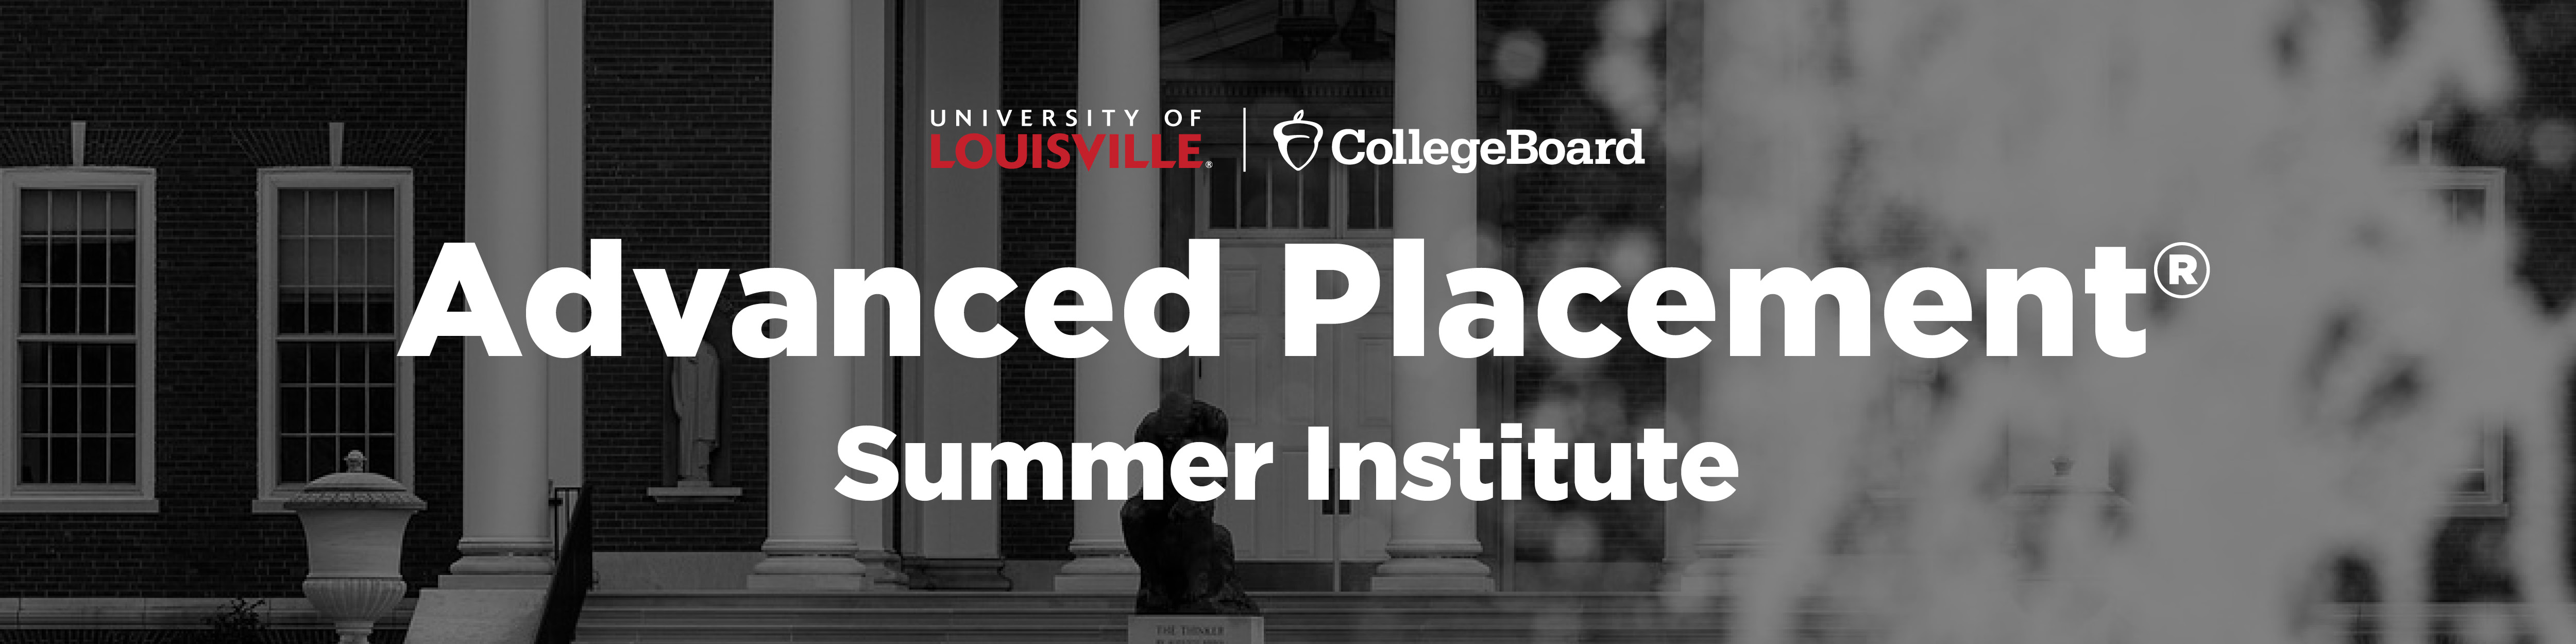 University of Louisville | College Board - Advanced Placement Summer Institute